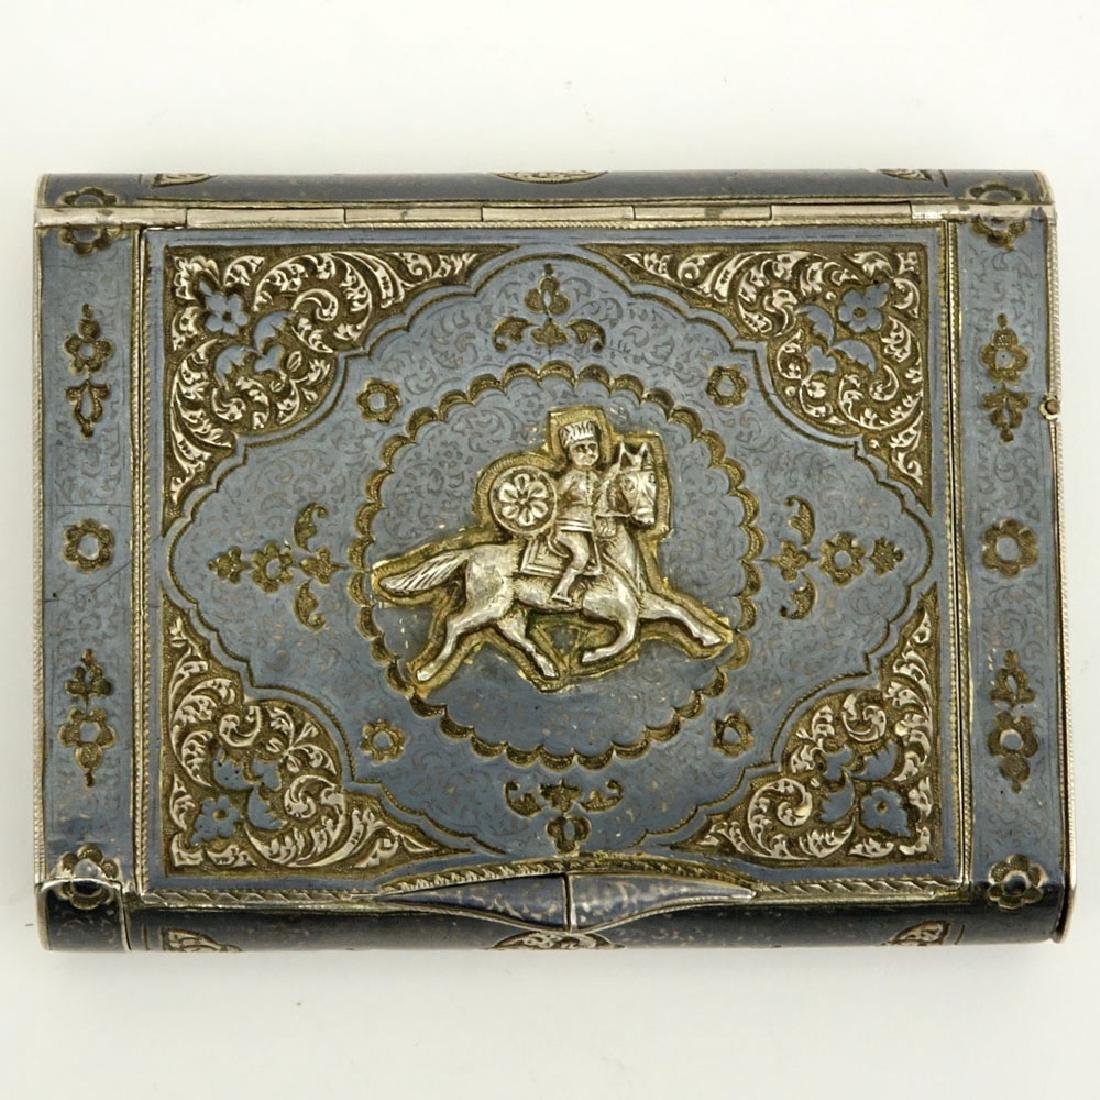 Early 20th Century Russian Steel Cigarette Case with